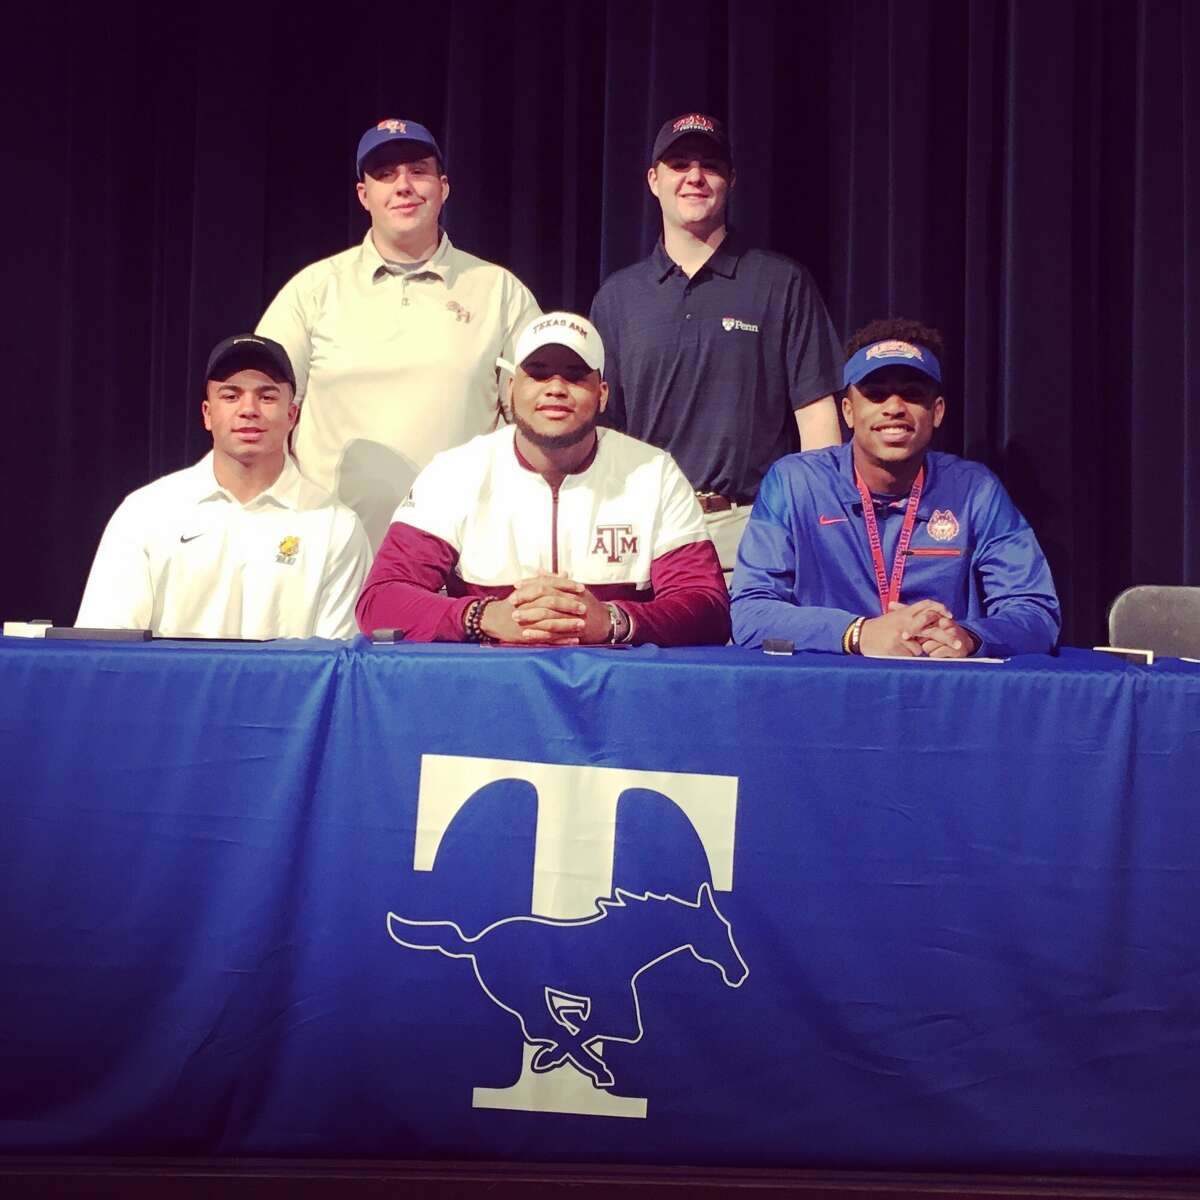 Katy Taylor football student-athletes (from top left) Connor Hay (Sam Houston State), David Perkins (Pennsylvania), Austin St. Julien (Texas Lutheran), Camron Horry (Texas A&) and Ethan Beek (Houston Baptist) celebrate National Signing Day, Feb. 1 at THS.